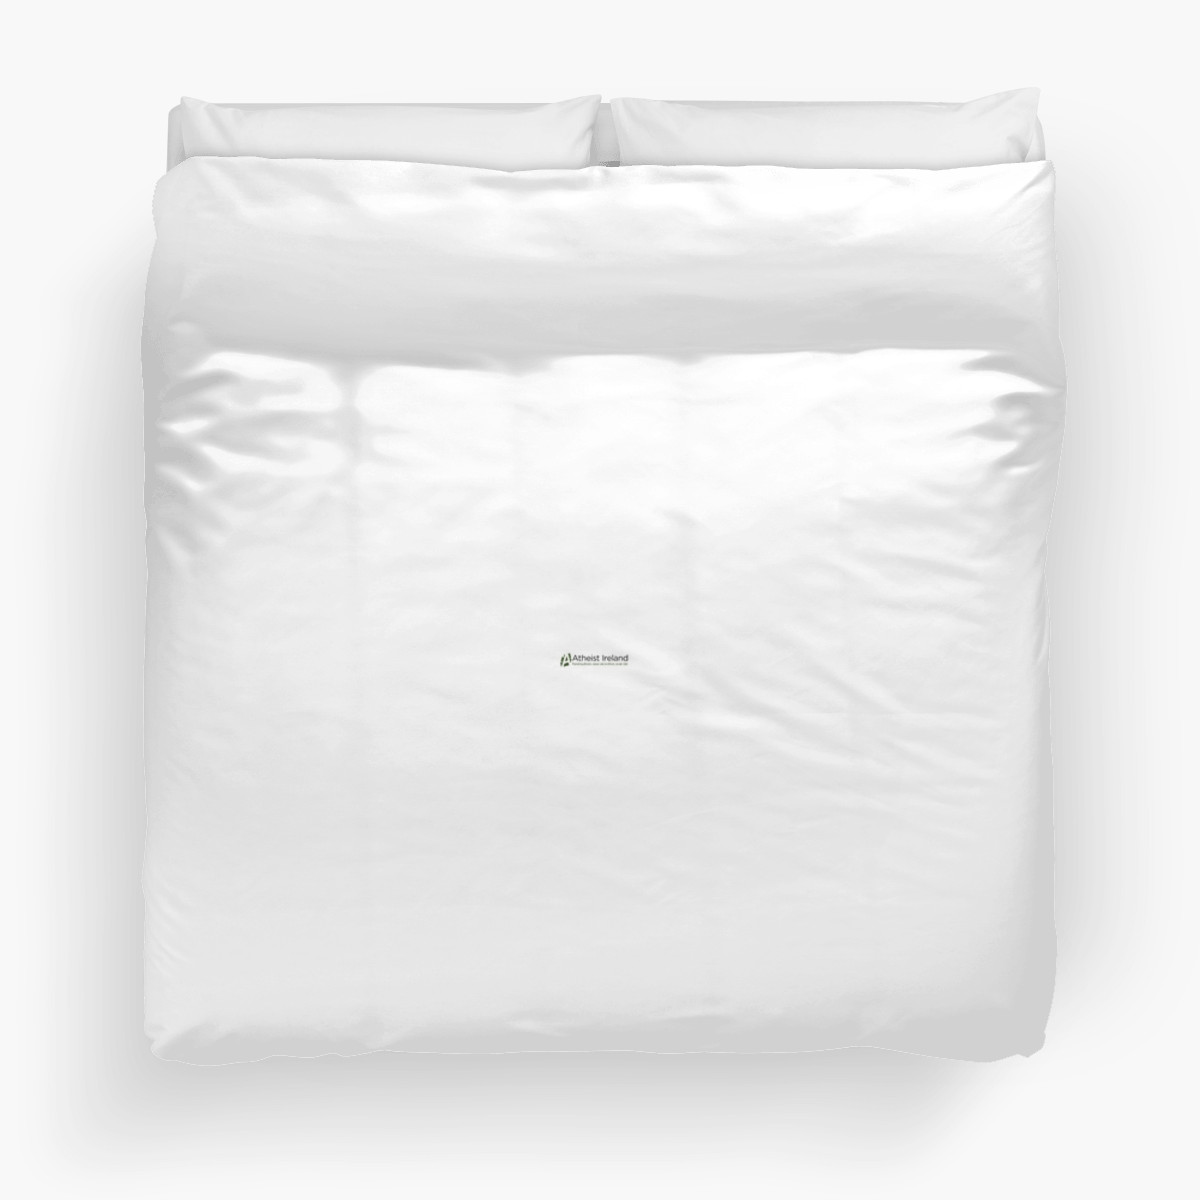 Atheist Ireland Logo Duvet Cover (king)